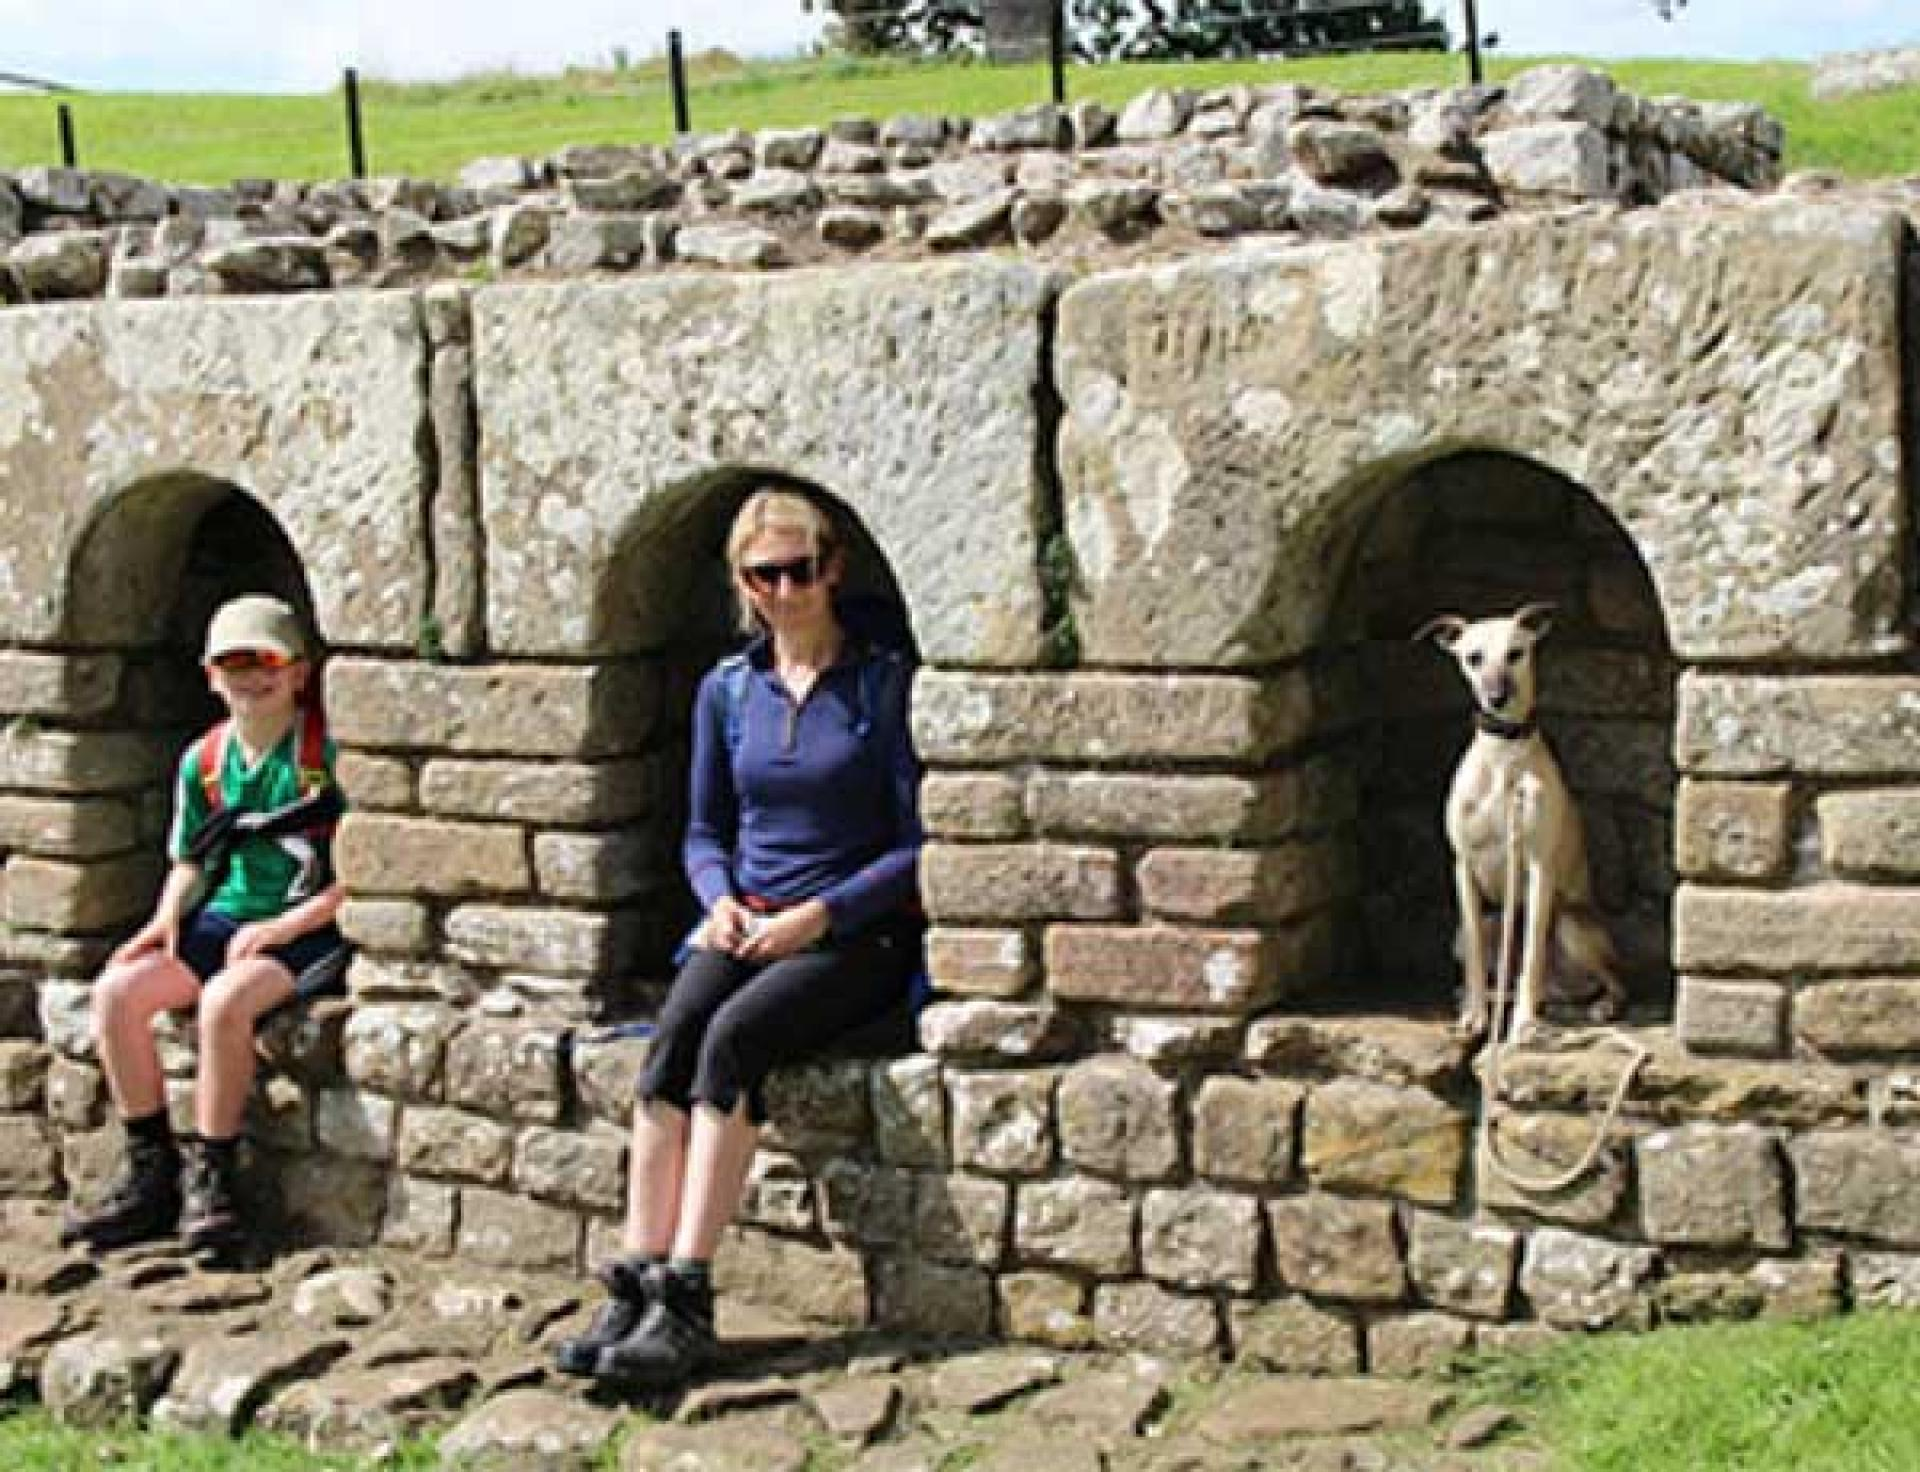 Dog and family sit in Roman ruins along Hadrian's Wall Path